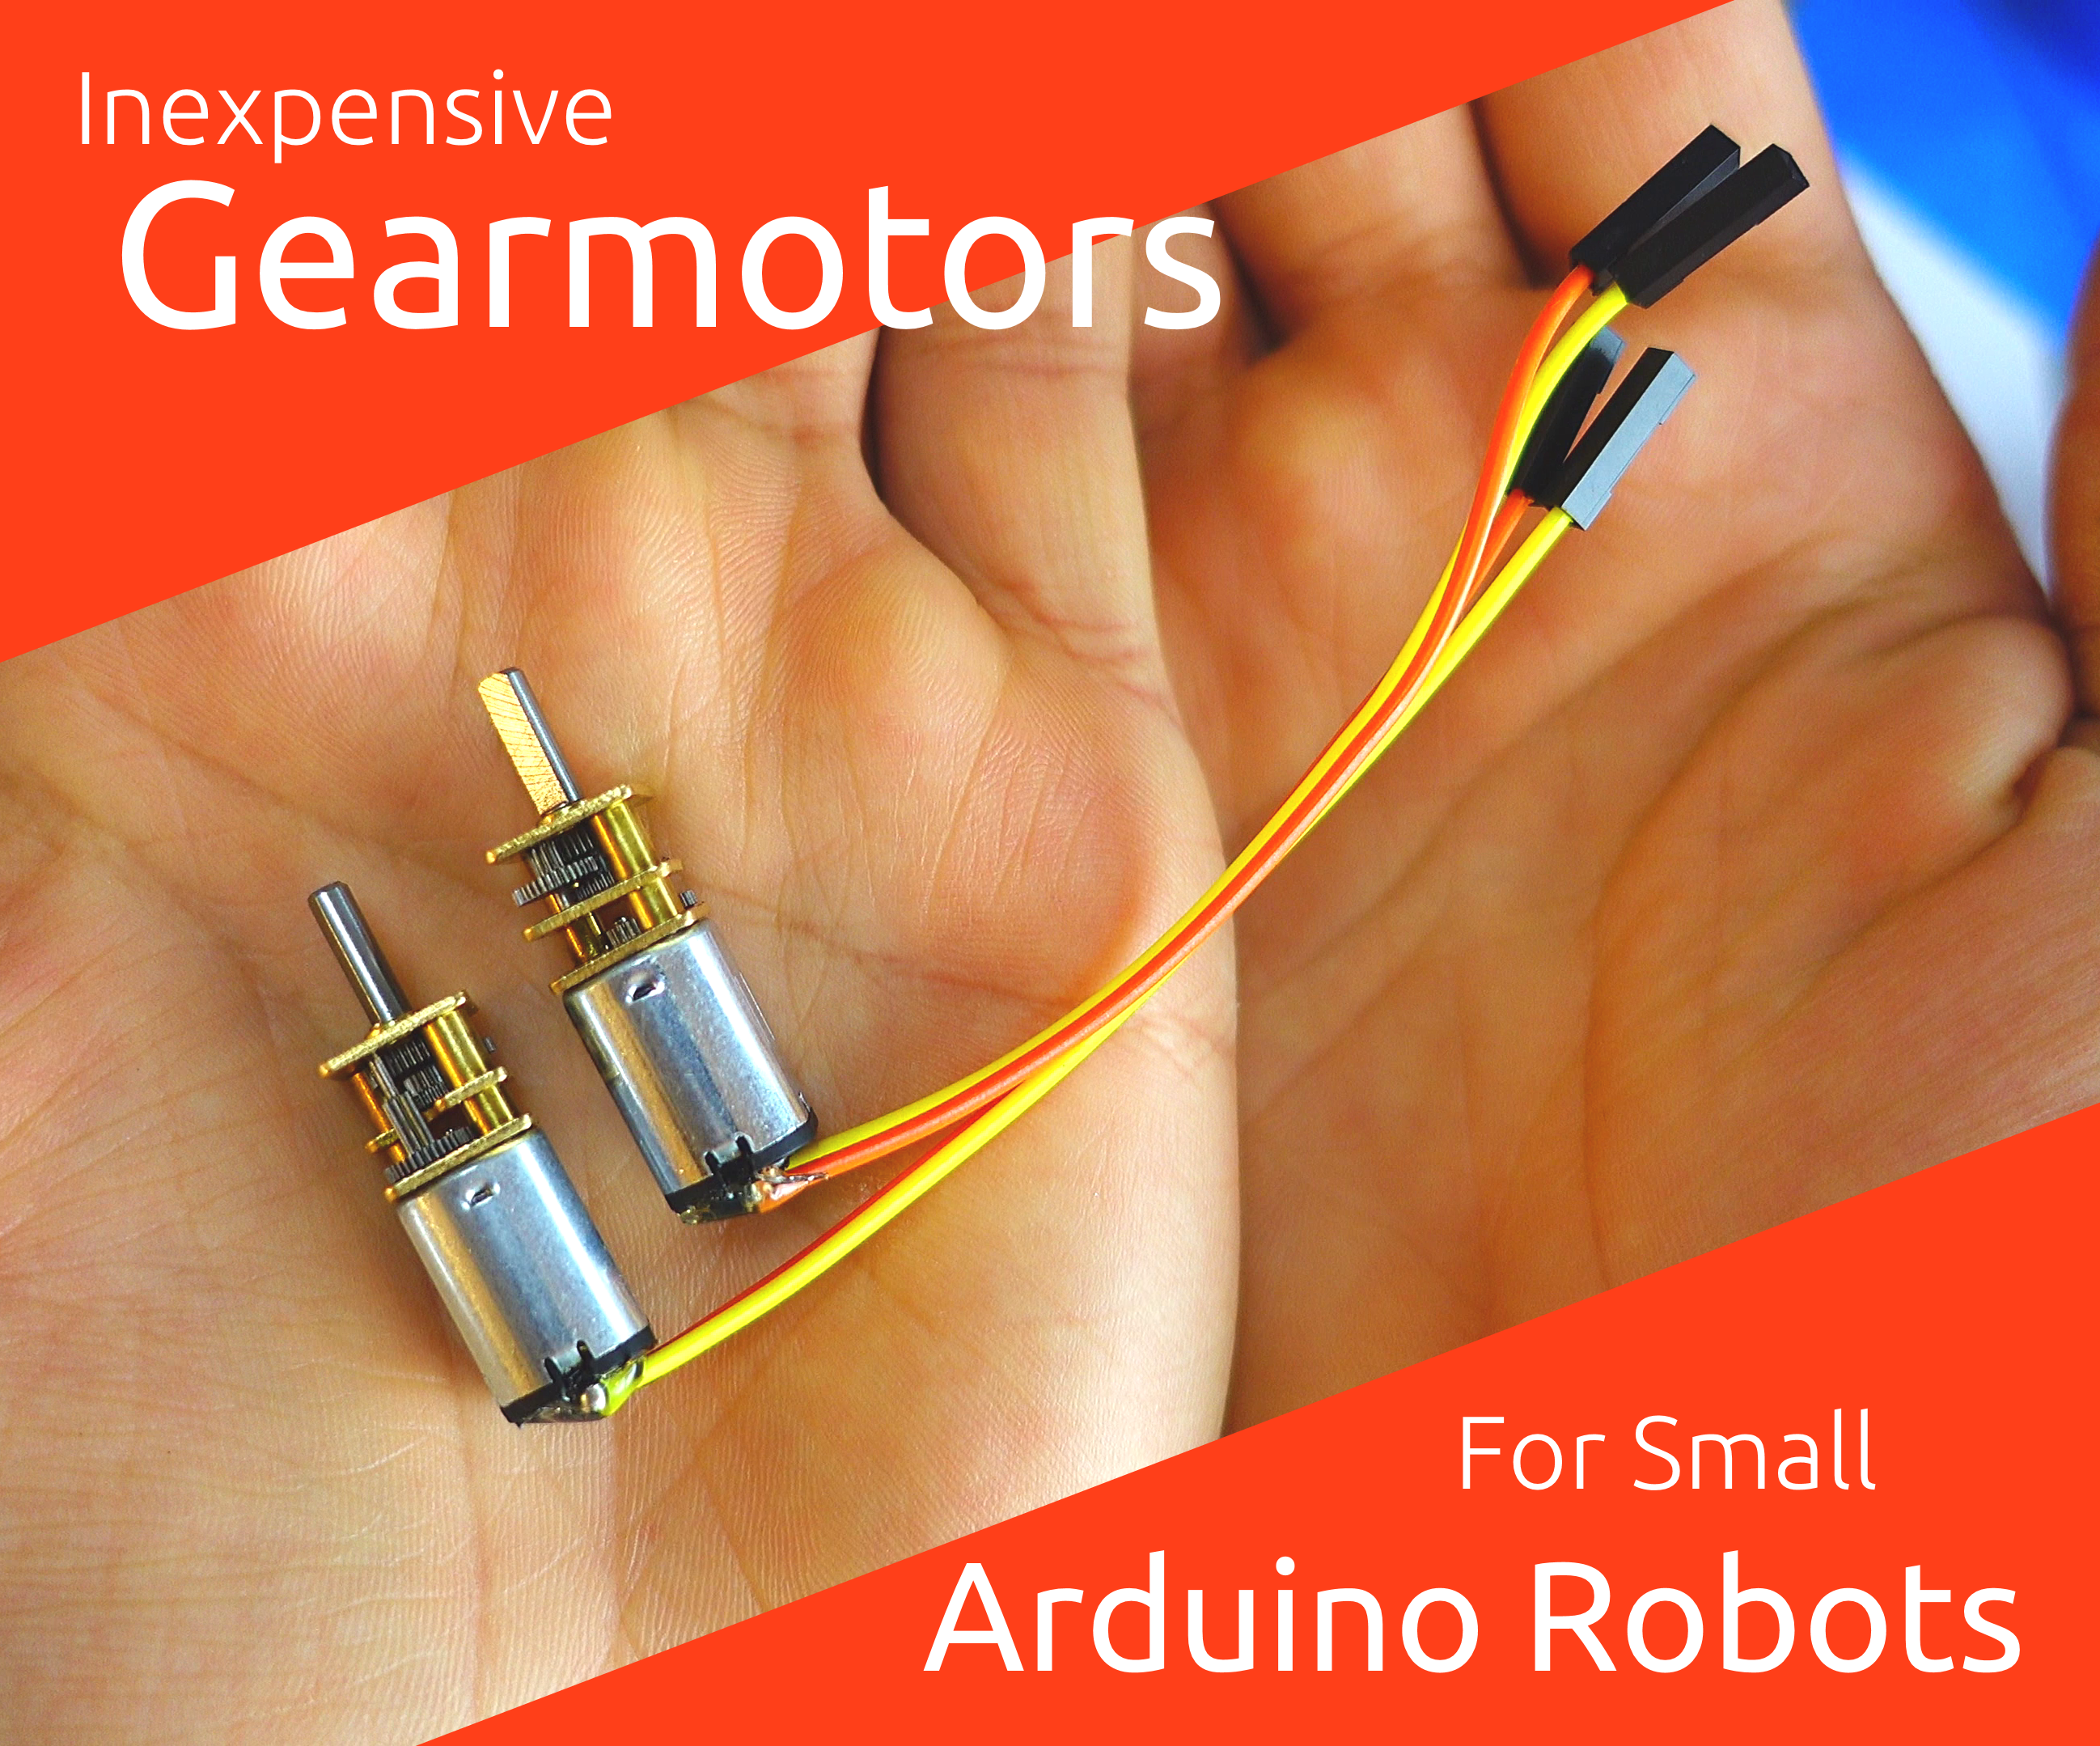 Picture of Inexpensive Gearmotors for Small Robots